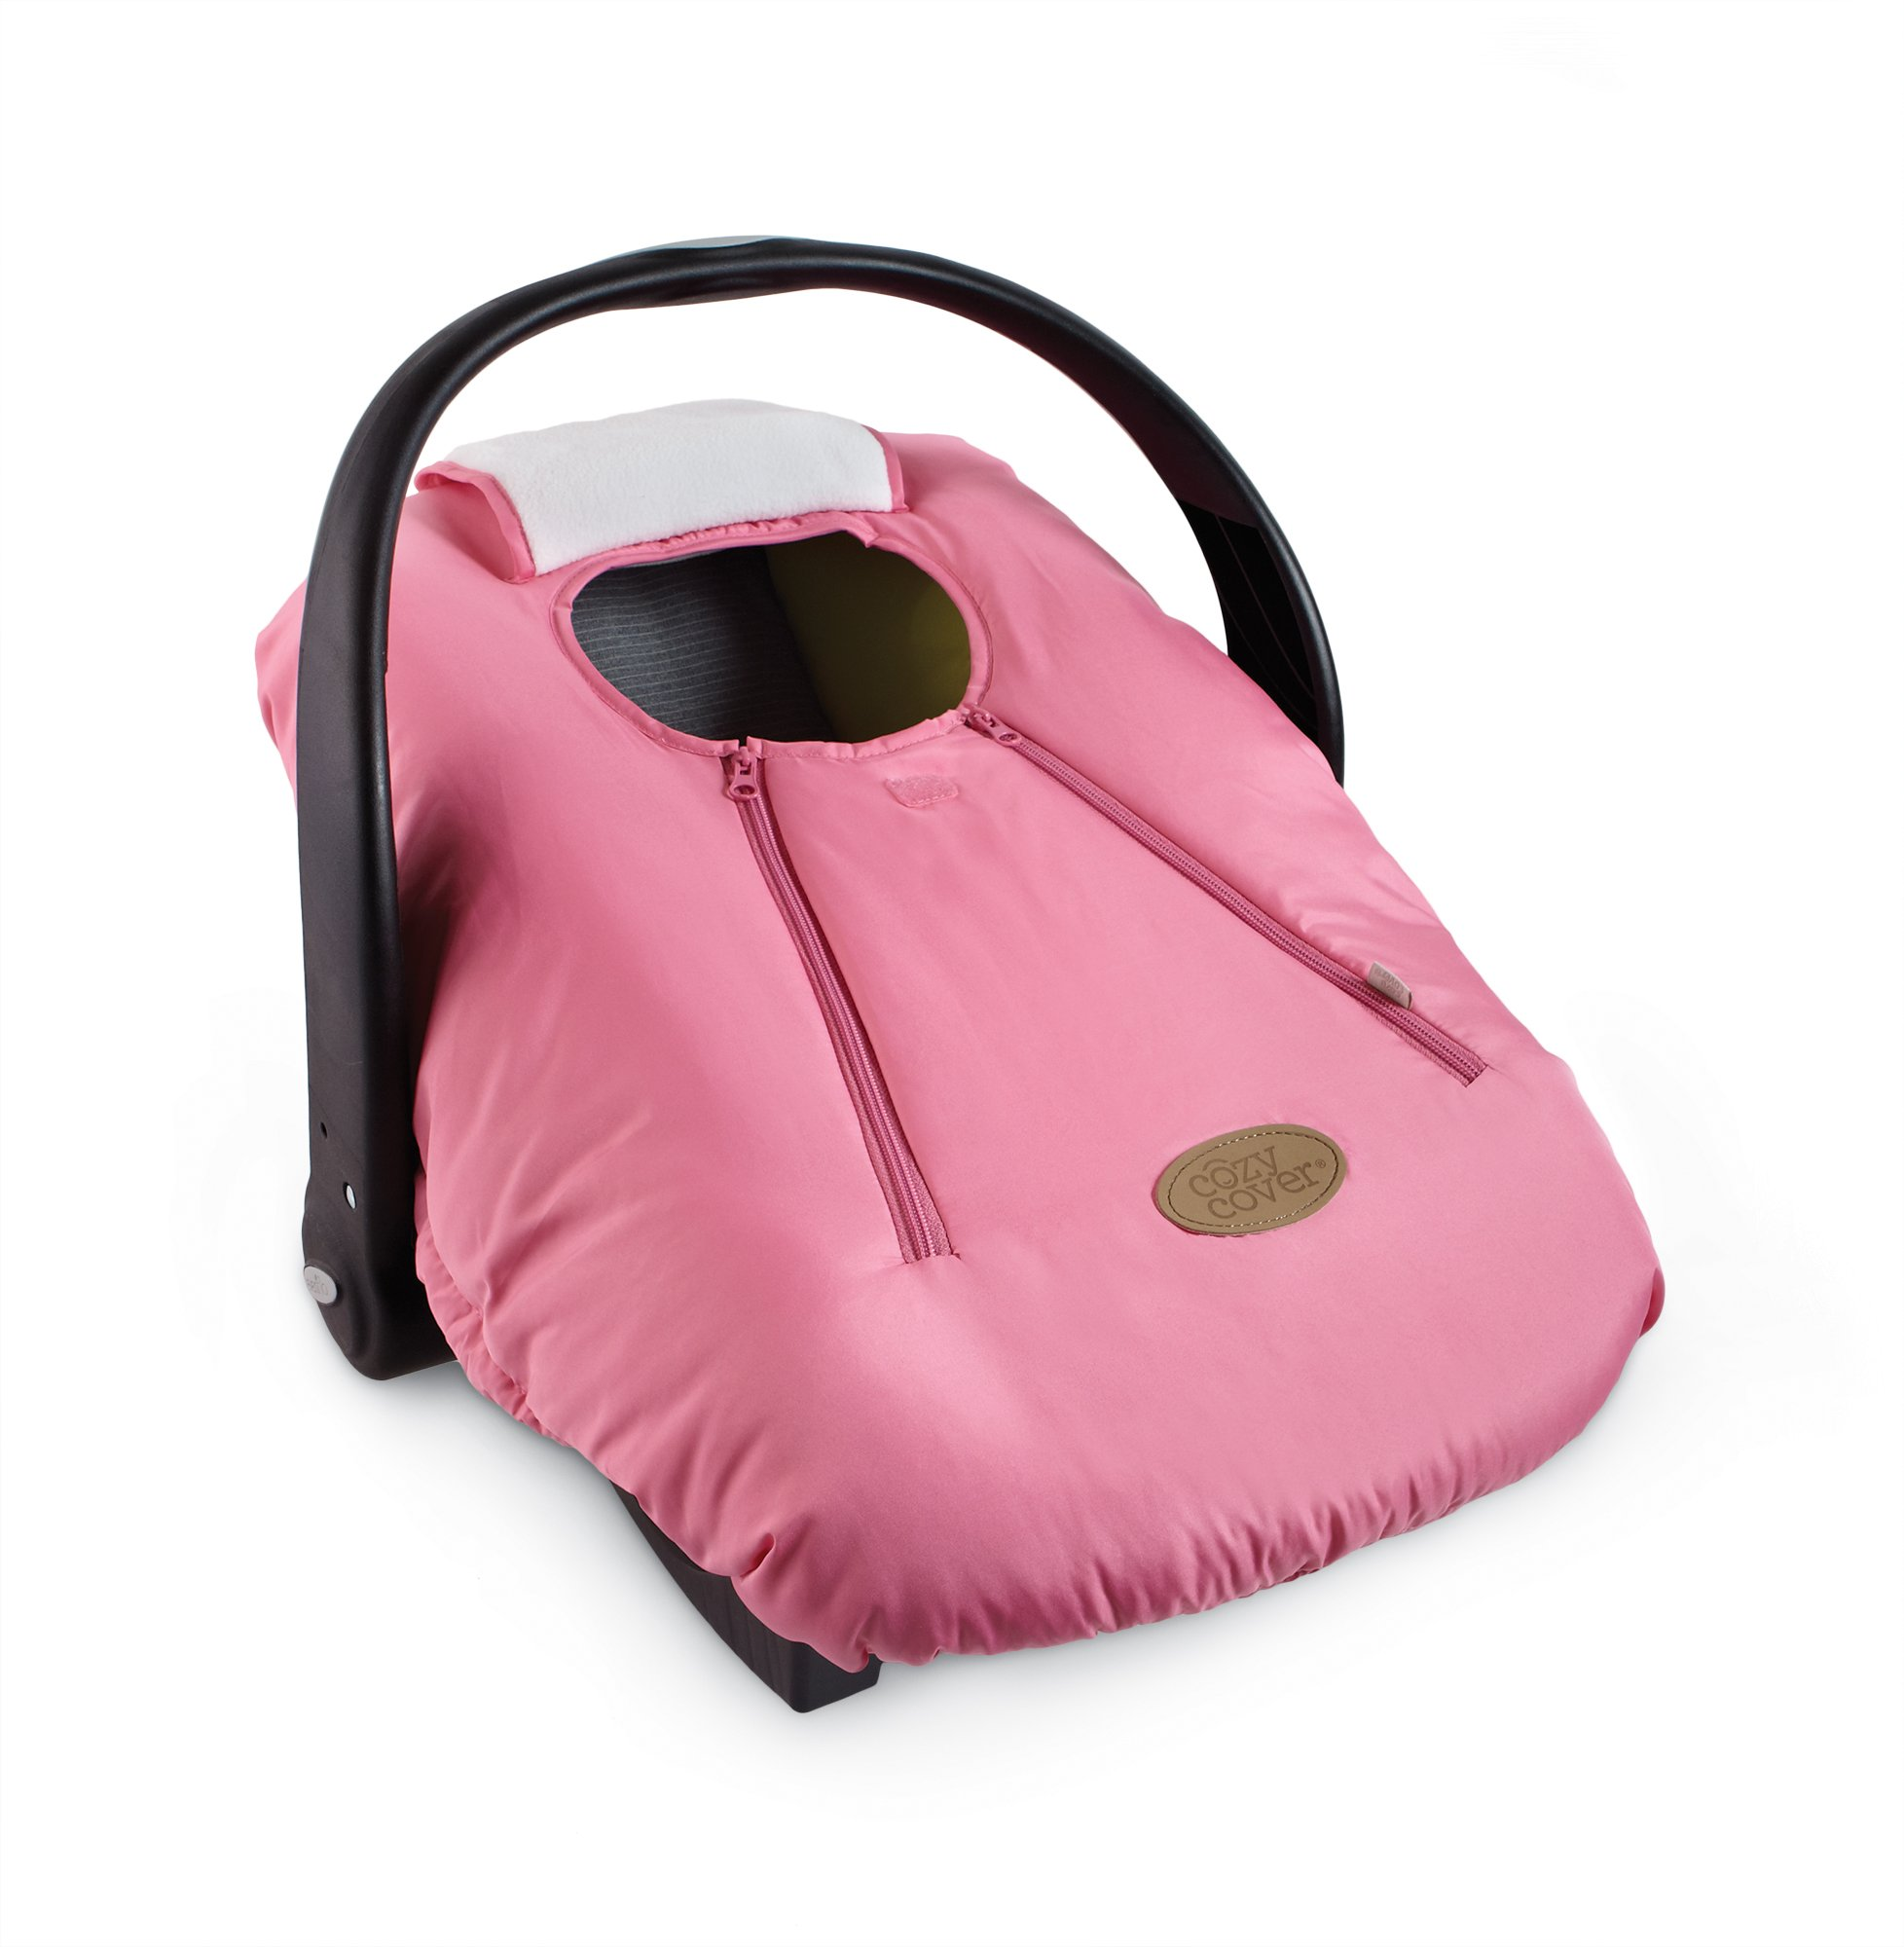 Cozy Cover - Infant Car Seat Cover (Pink) 689852903563 | eBay